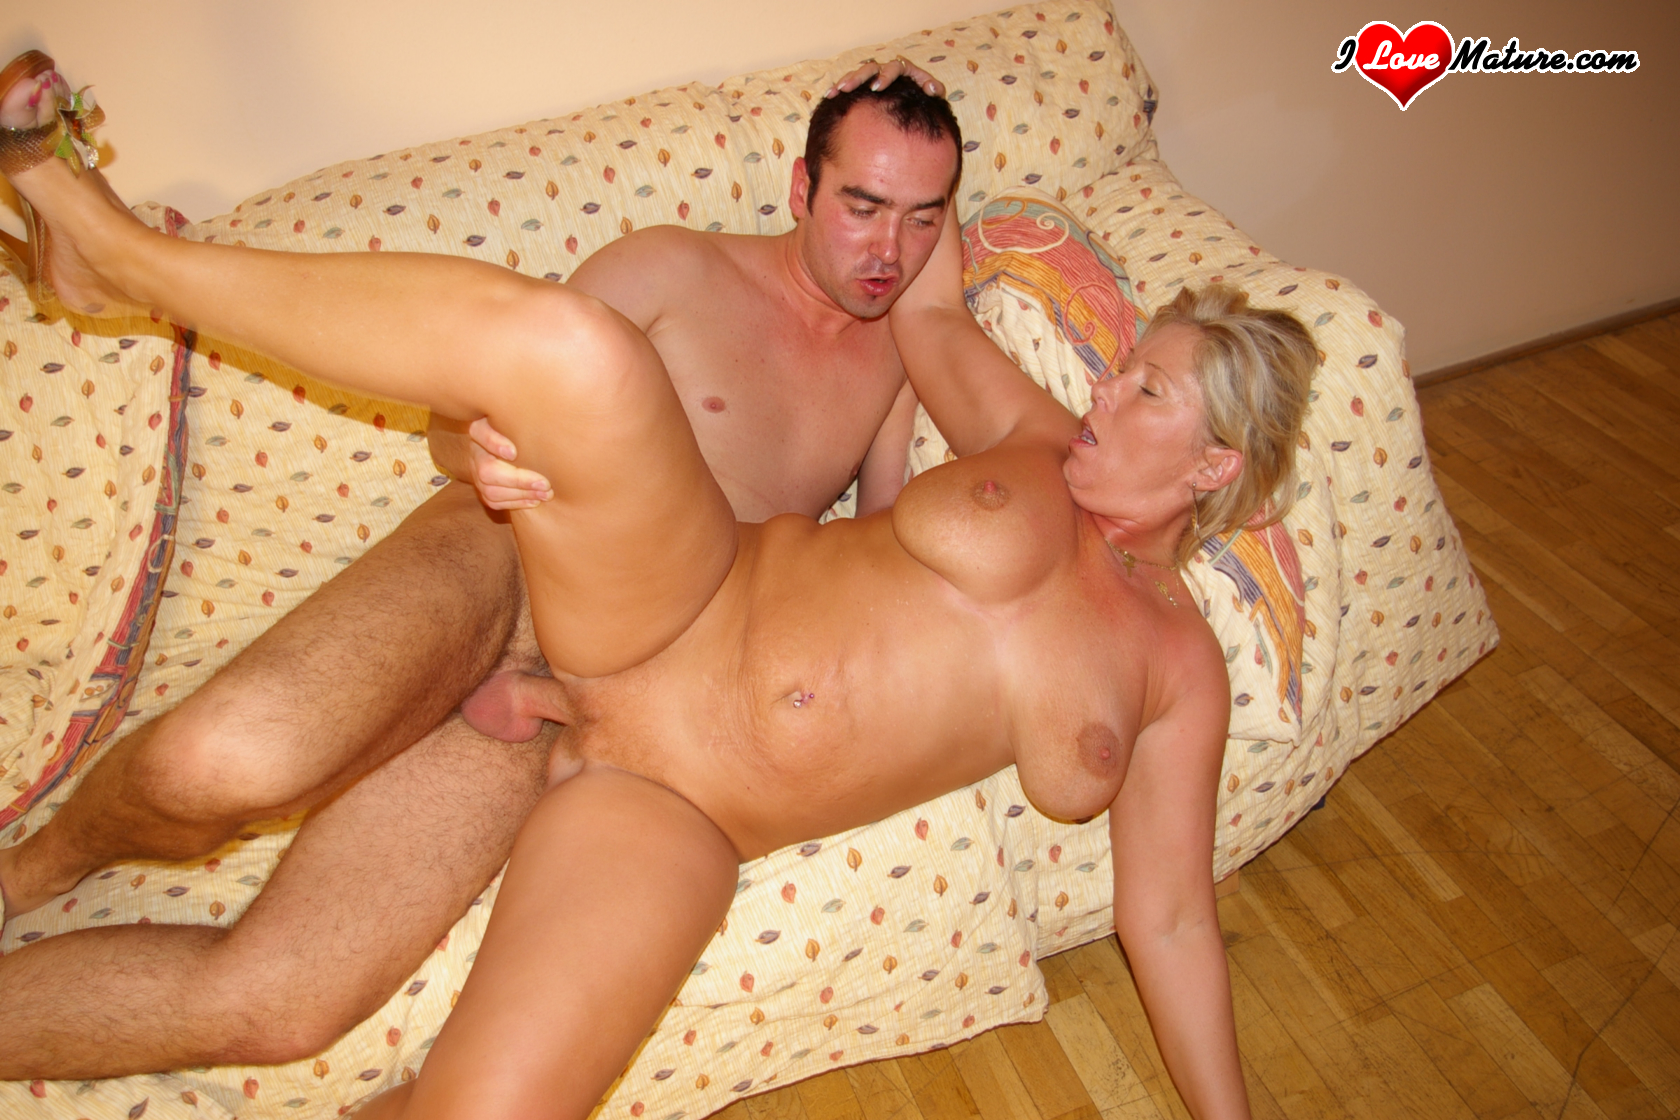 Older woman wakes getting fucked